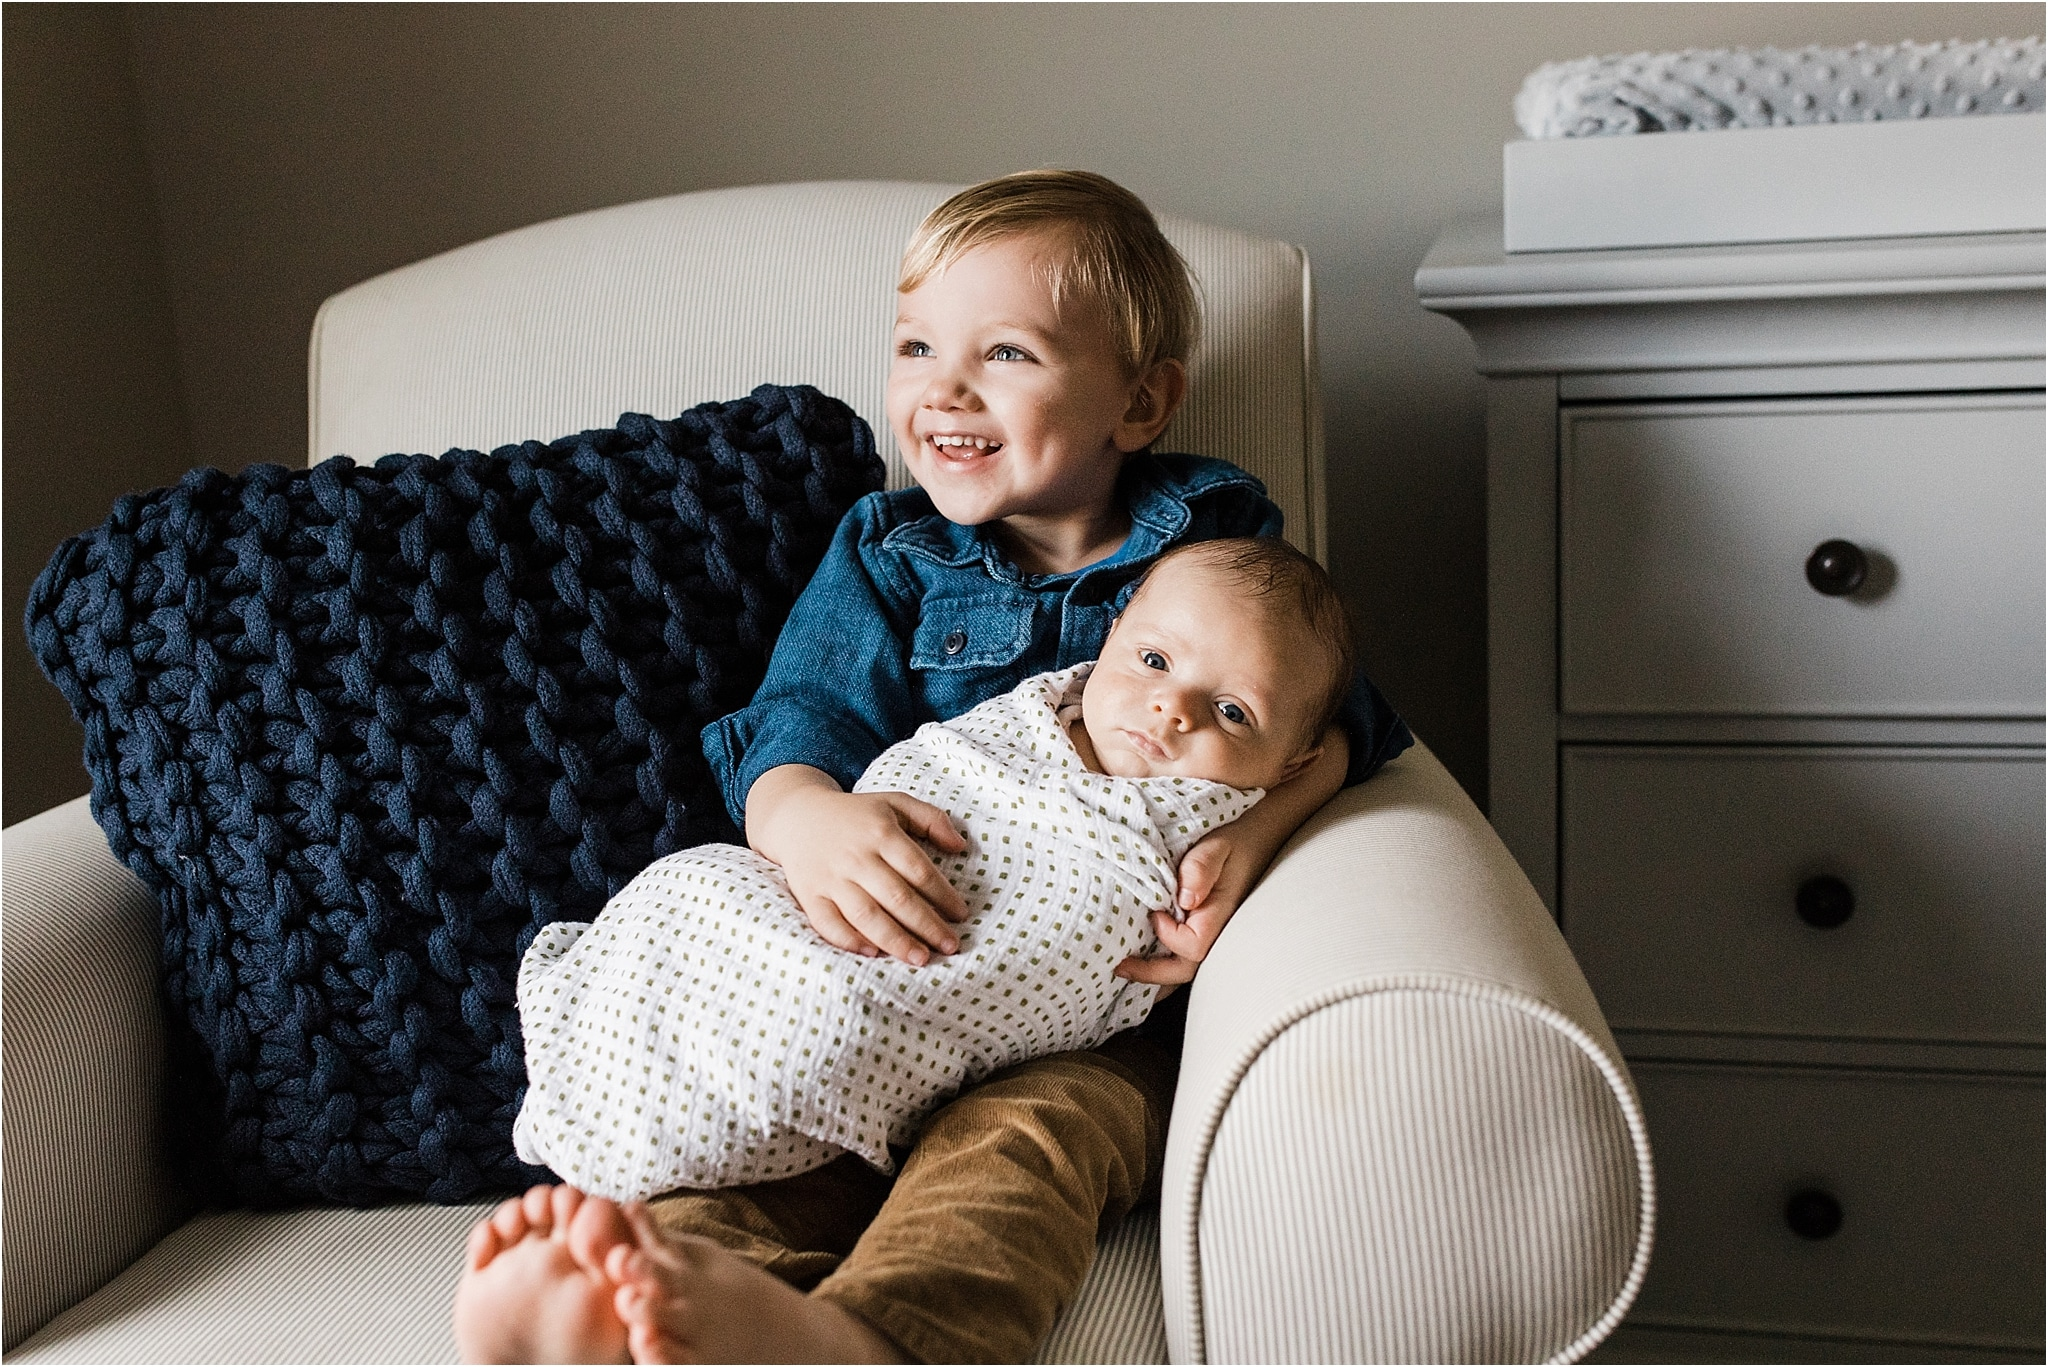 big brother holding and loving new baby brother in home nursery